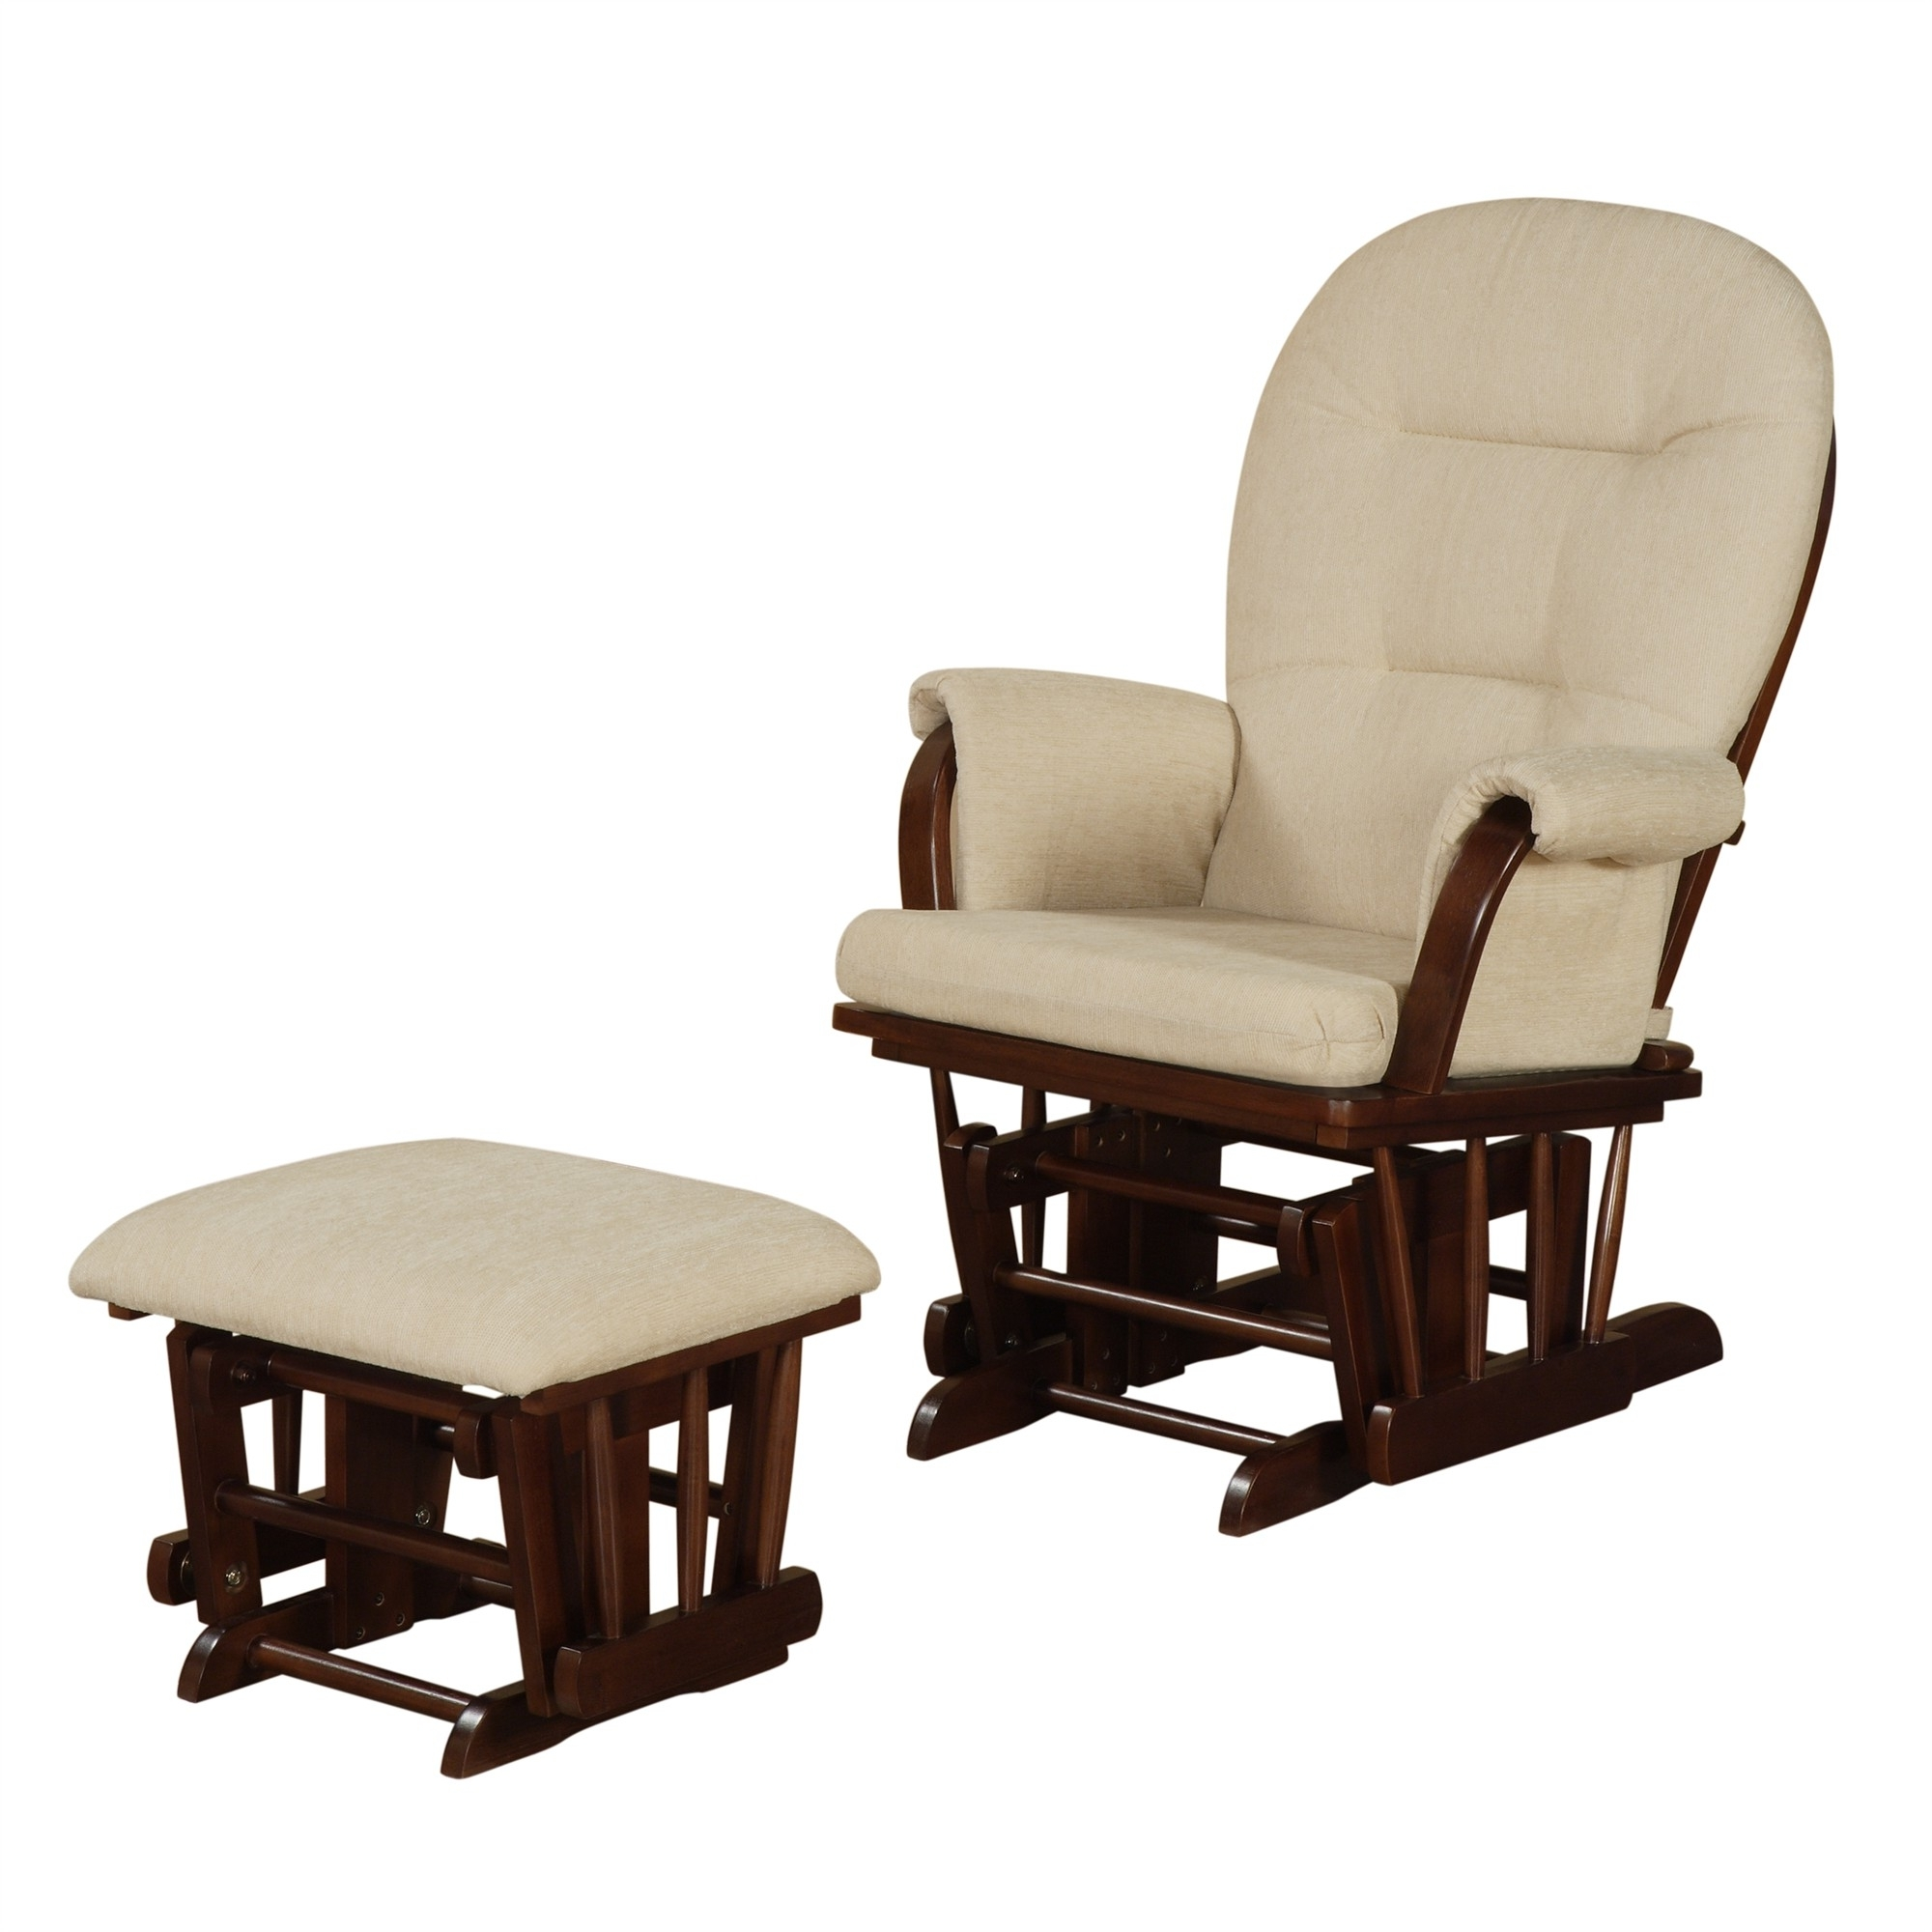 Widely Used Rocking Chair Design Ottoman Rocking Chair Glider Rocker Recliner Throughout Rocking Chairs With Ottoman (View 2 of 15)